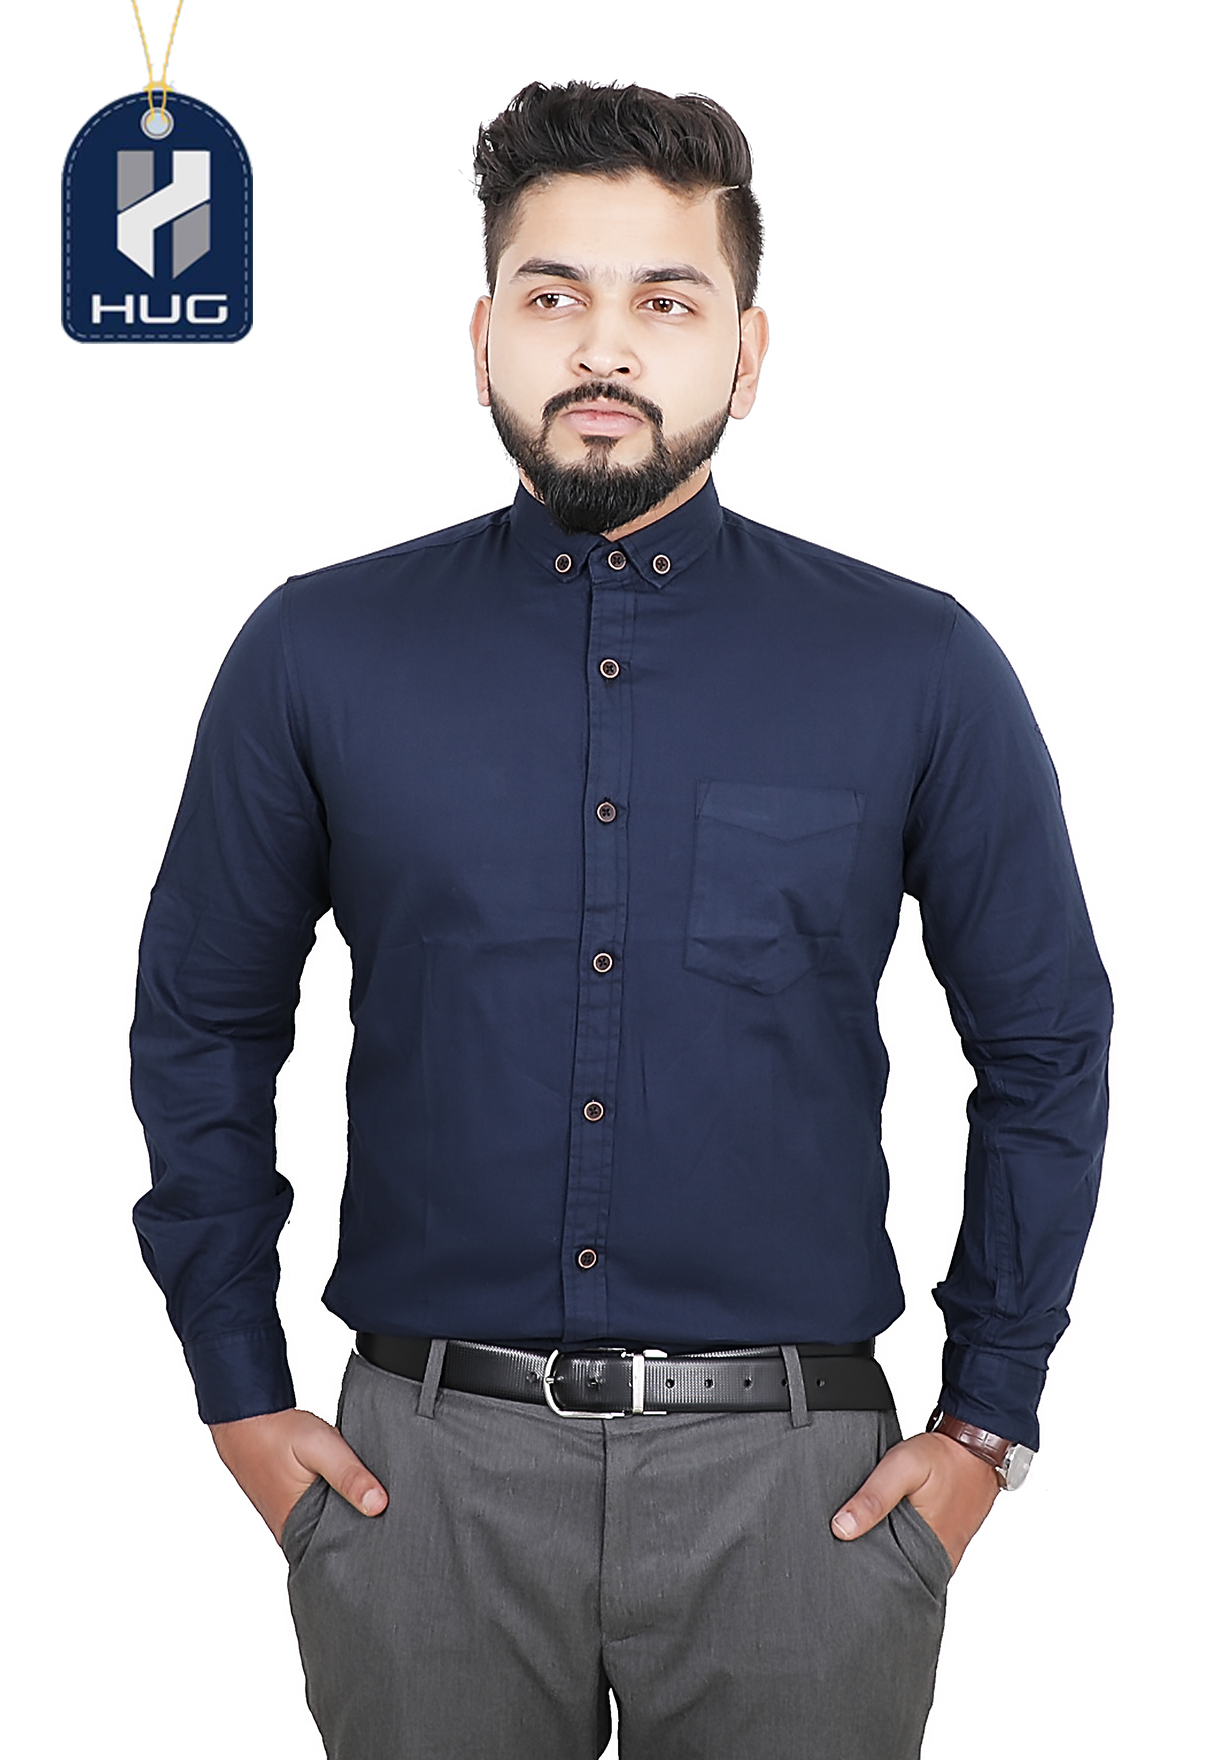 HUG Mens Casual Shirts Size M - PNB 0111